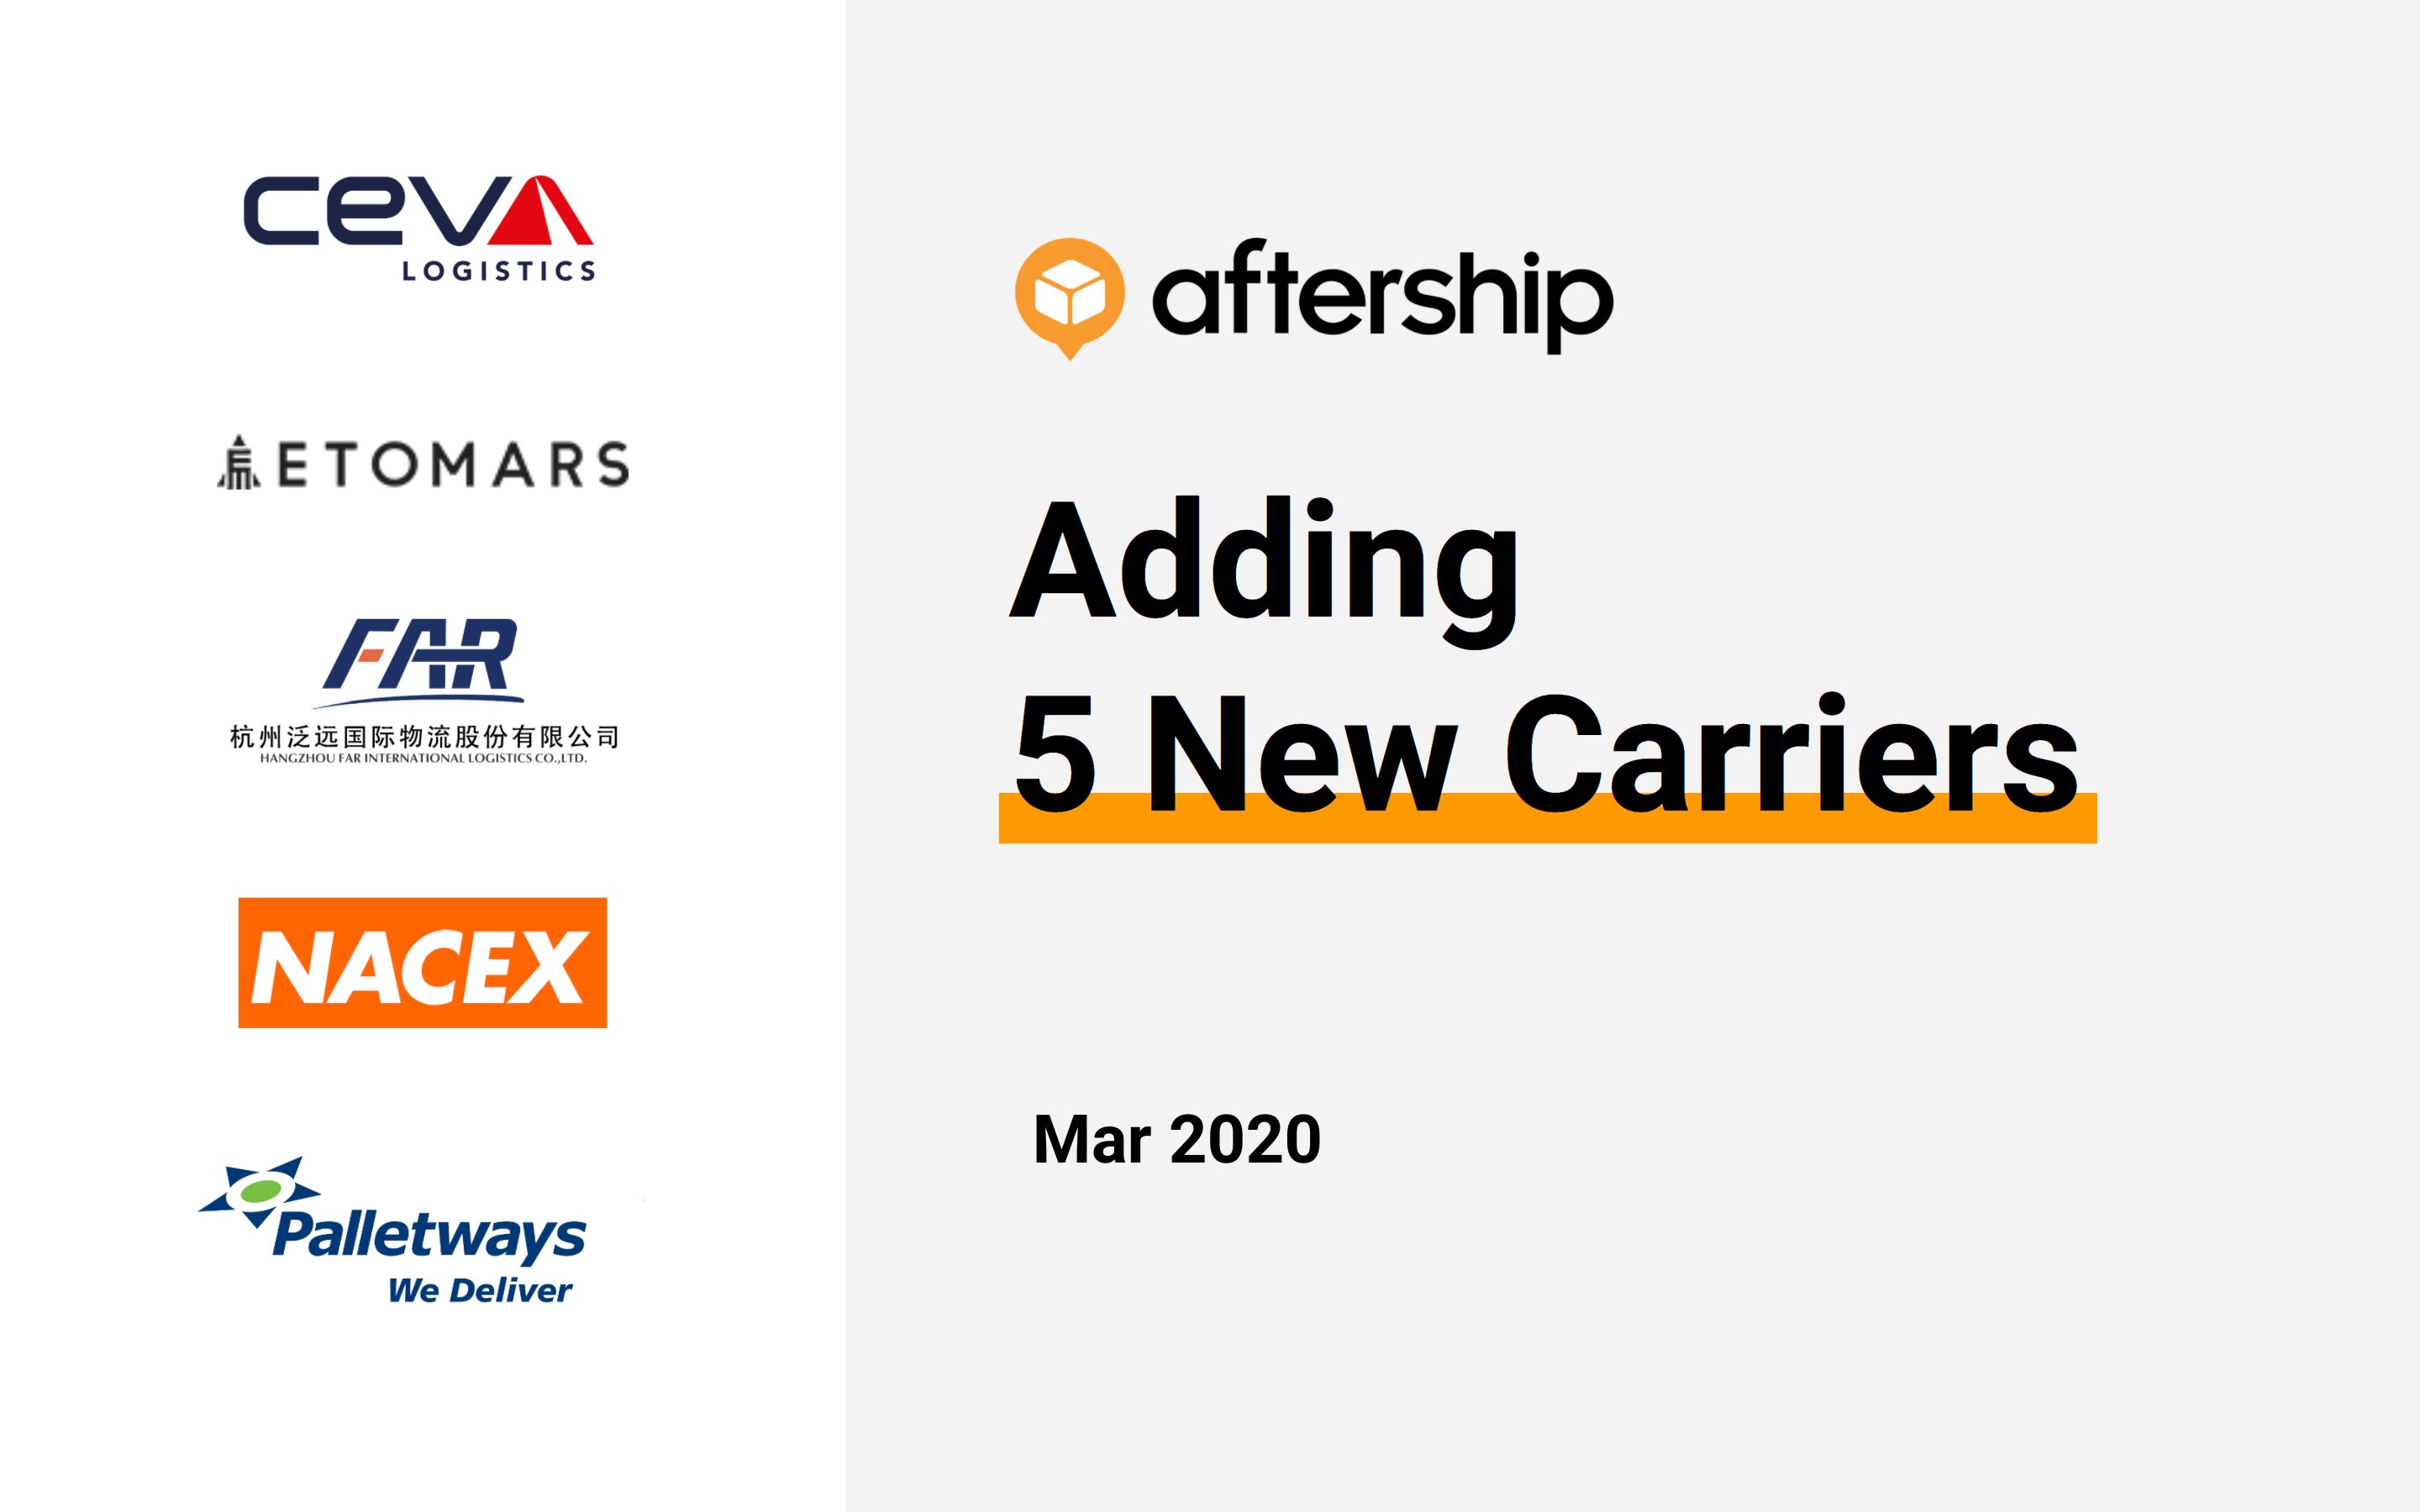 AfterShip added 5 new carriers this week (16 Mar 2020 to 20 Mar 2020)